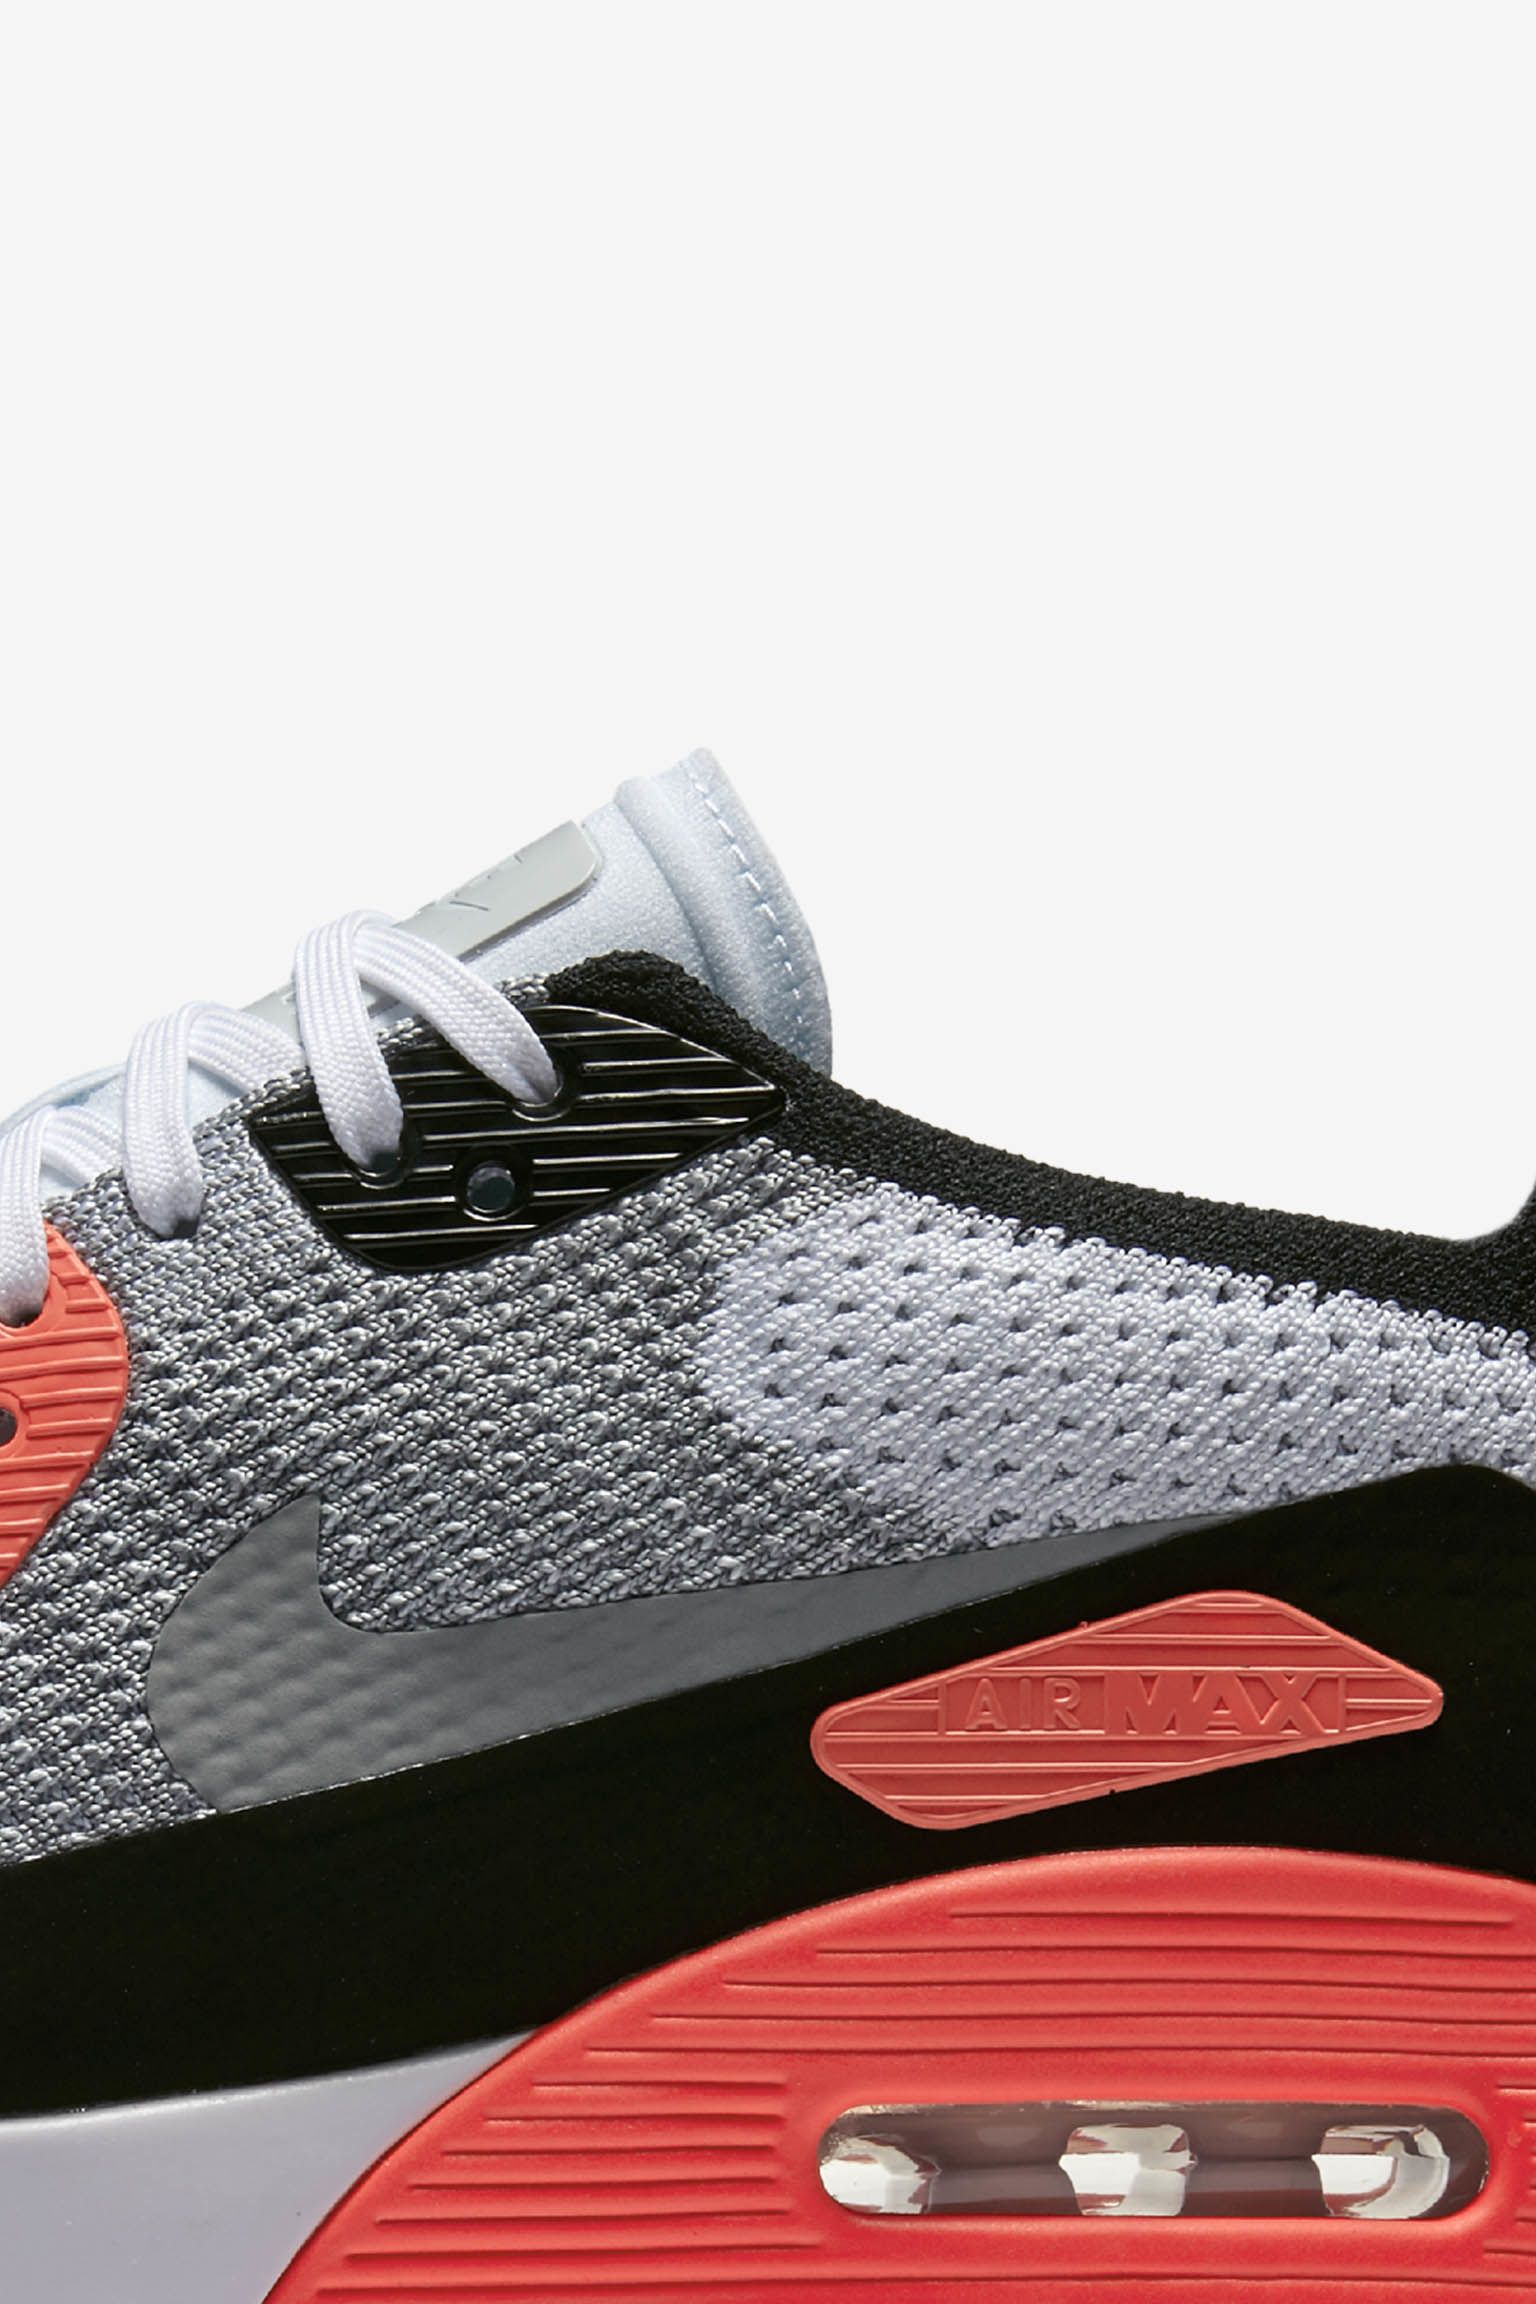 outlet store 5921e 383e1 Nike Air Max 90 Ultra 2.0 Flyknit White amp Bright Crimson voor dames